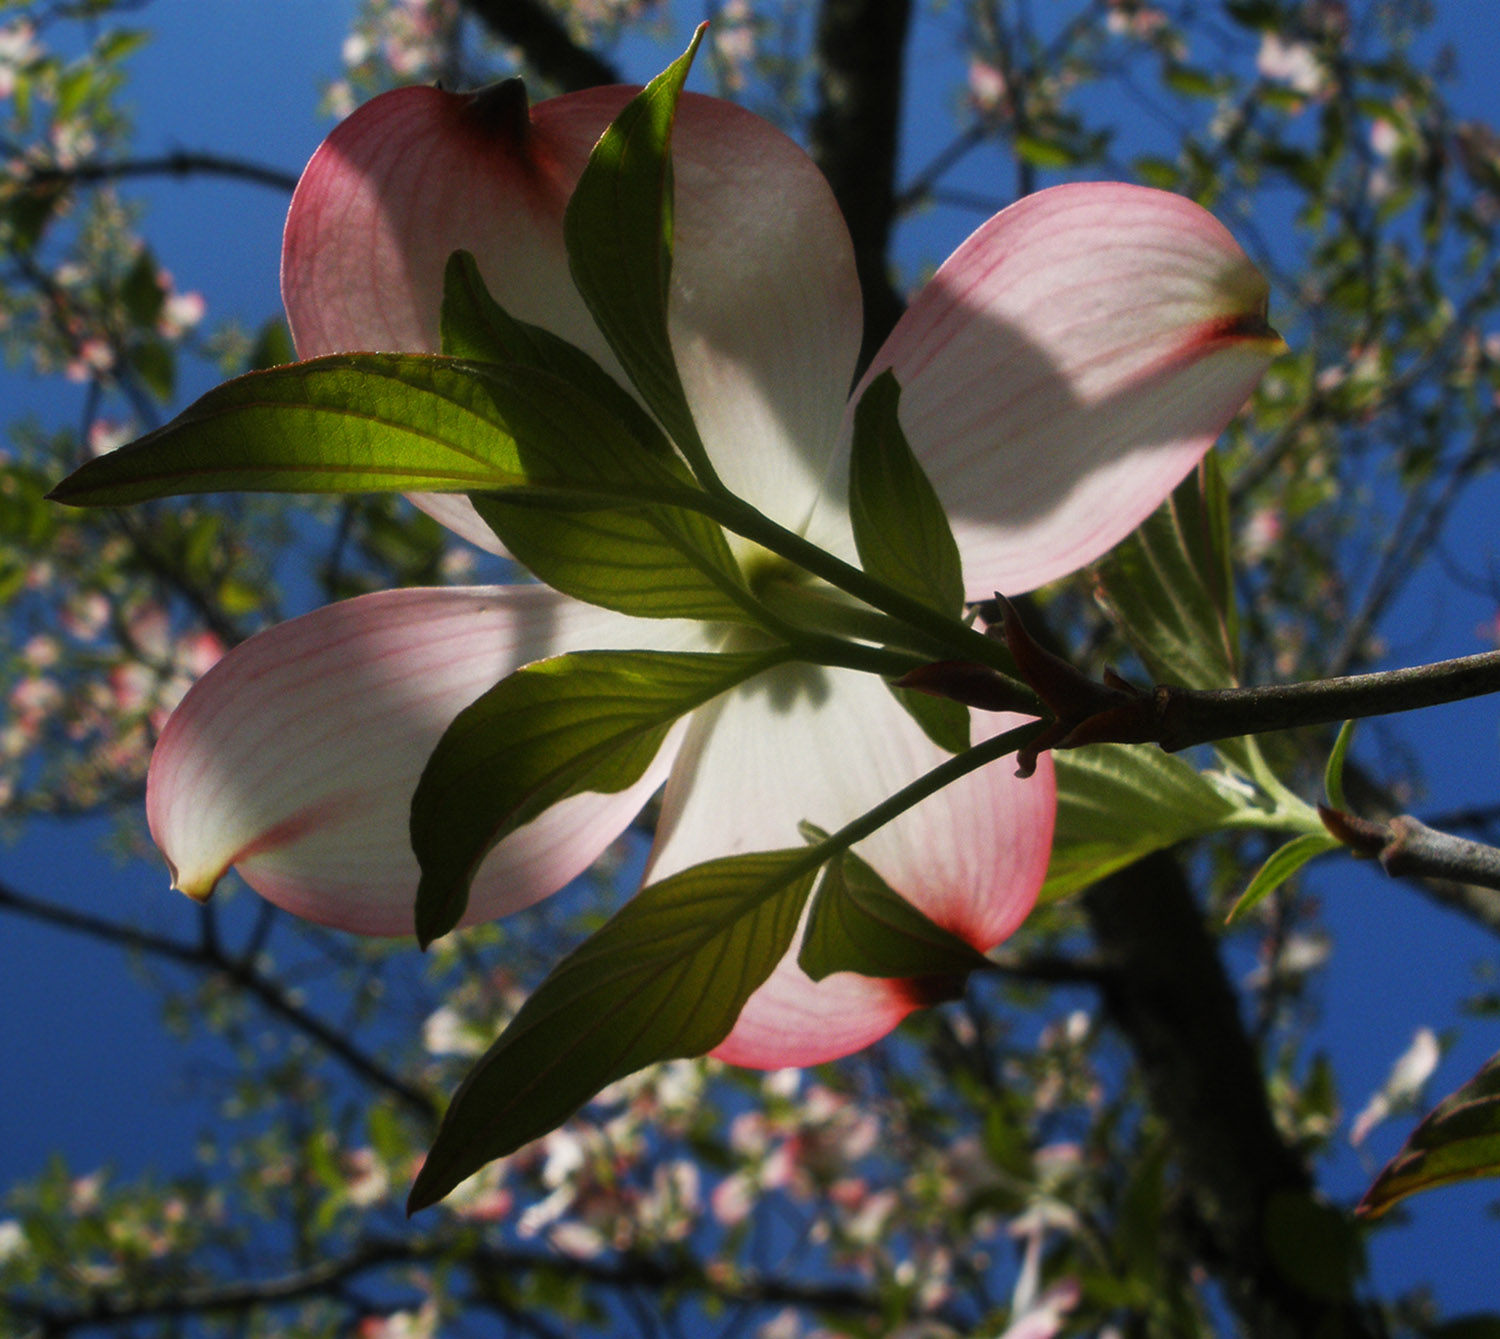 5. pink dogwood in the sky, by k. bos